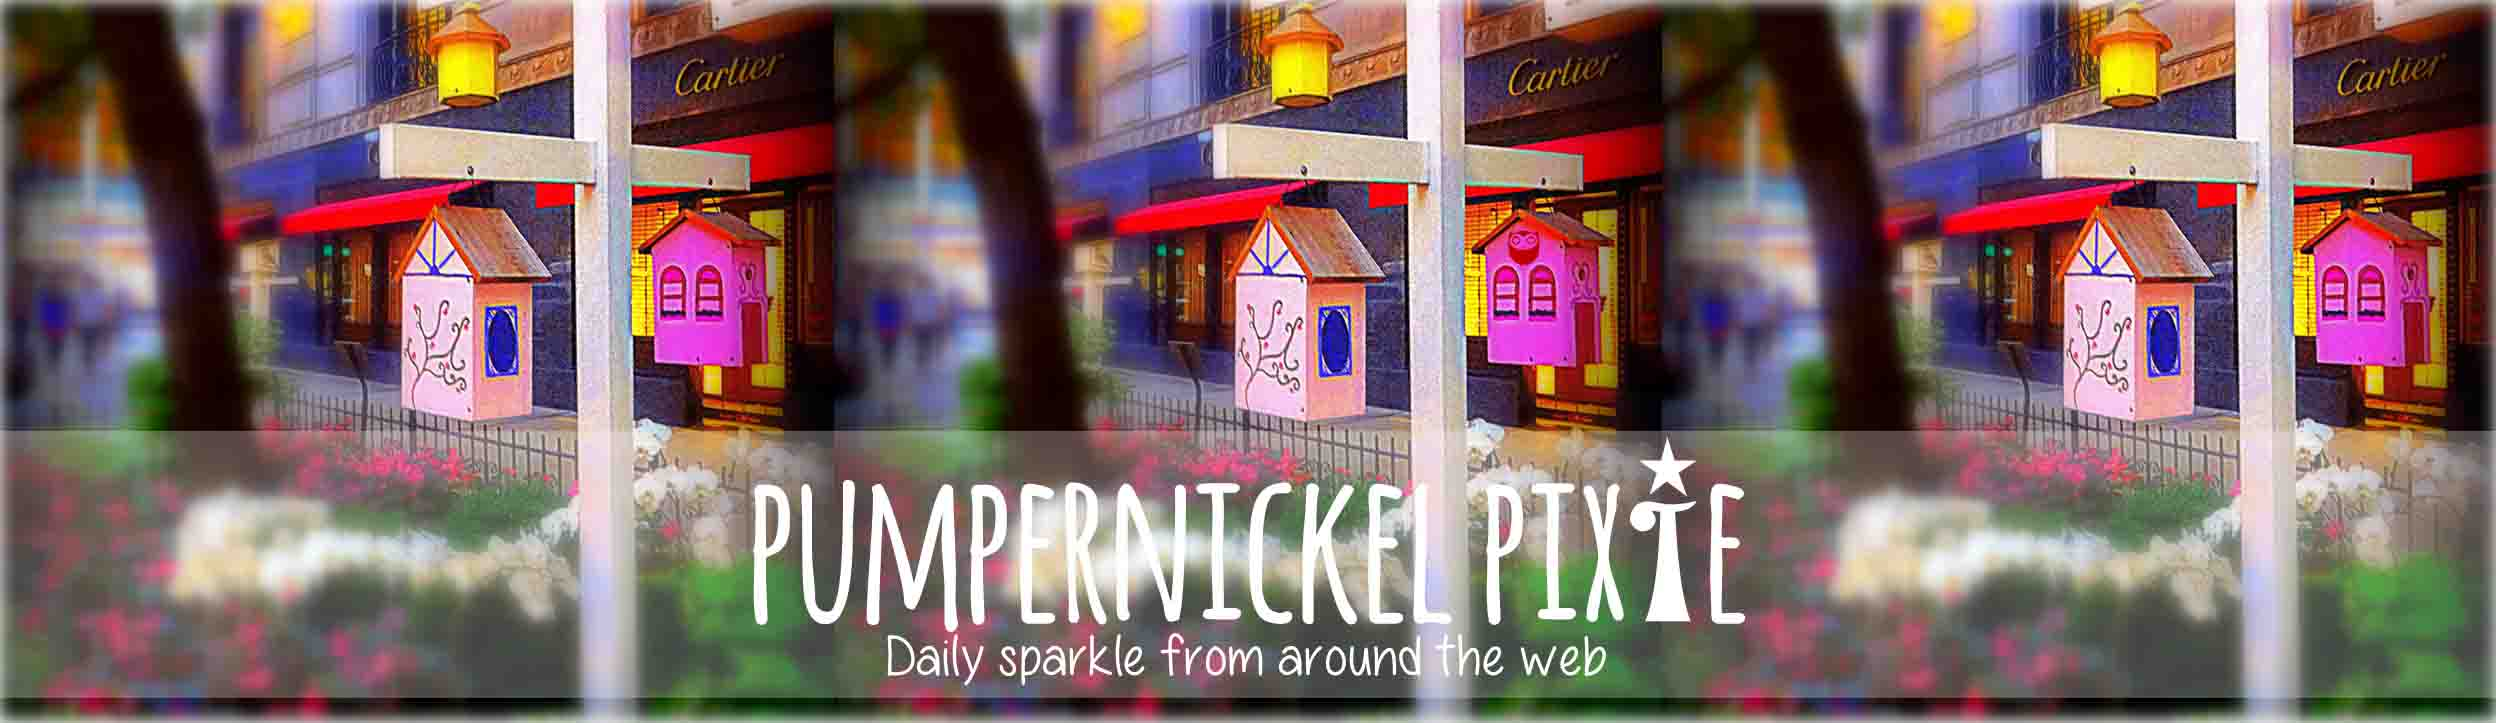 Pumpernickel Pixie